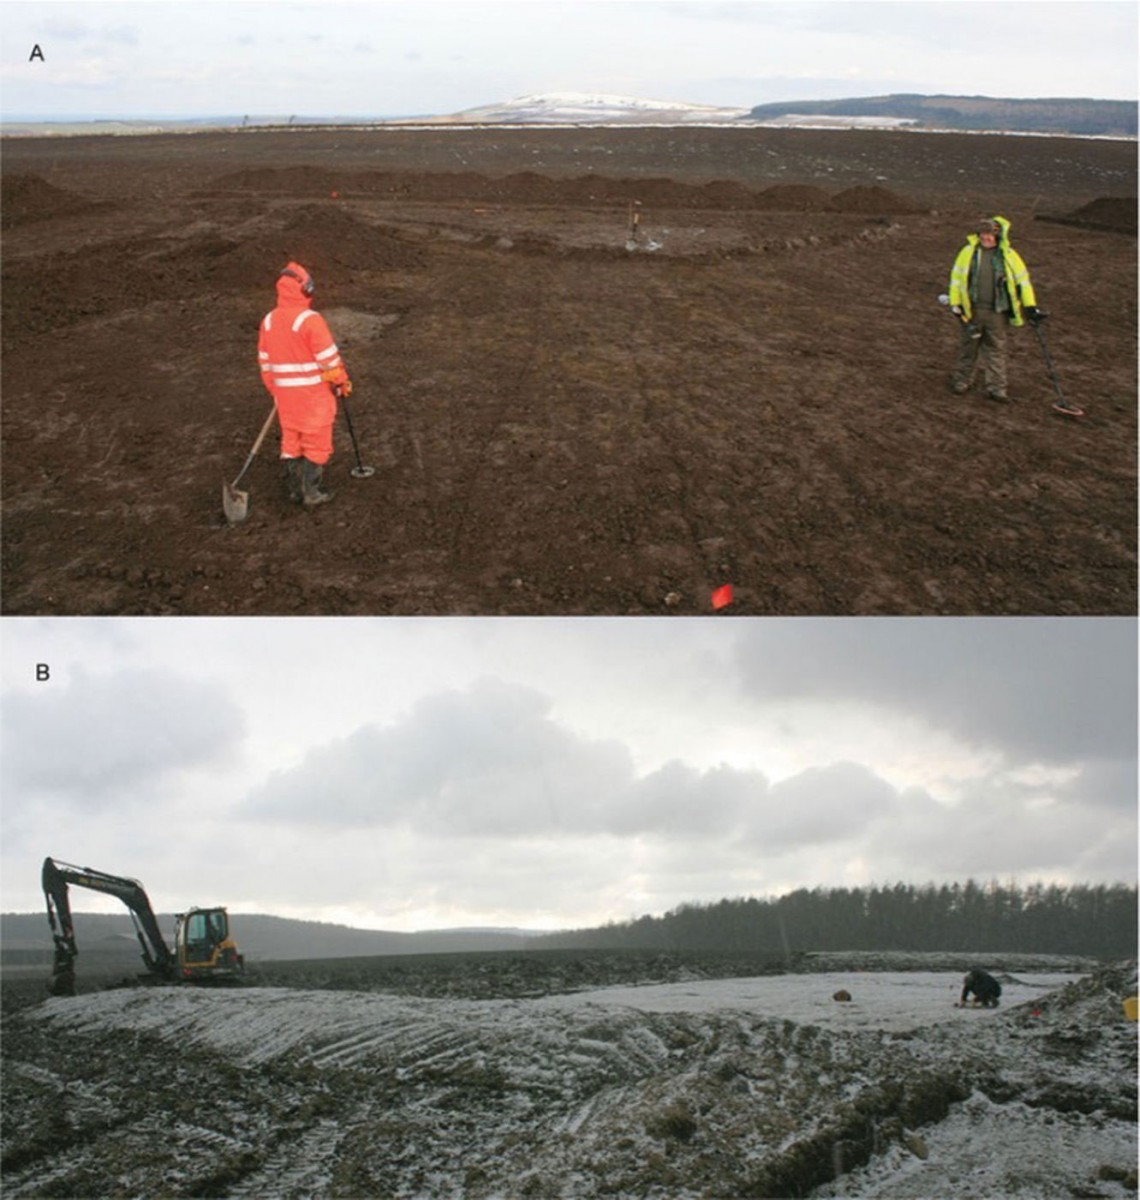 The archaeologists spent much of the winter excavating the field in Scotland. Photo Credit: Live Science.